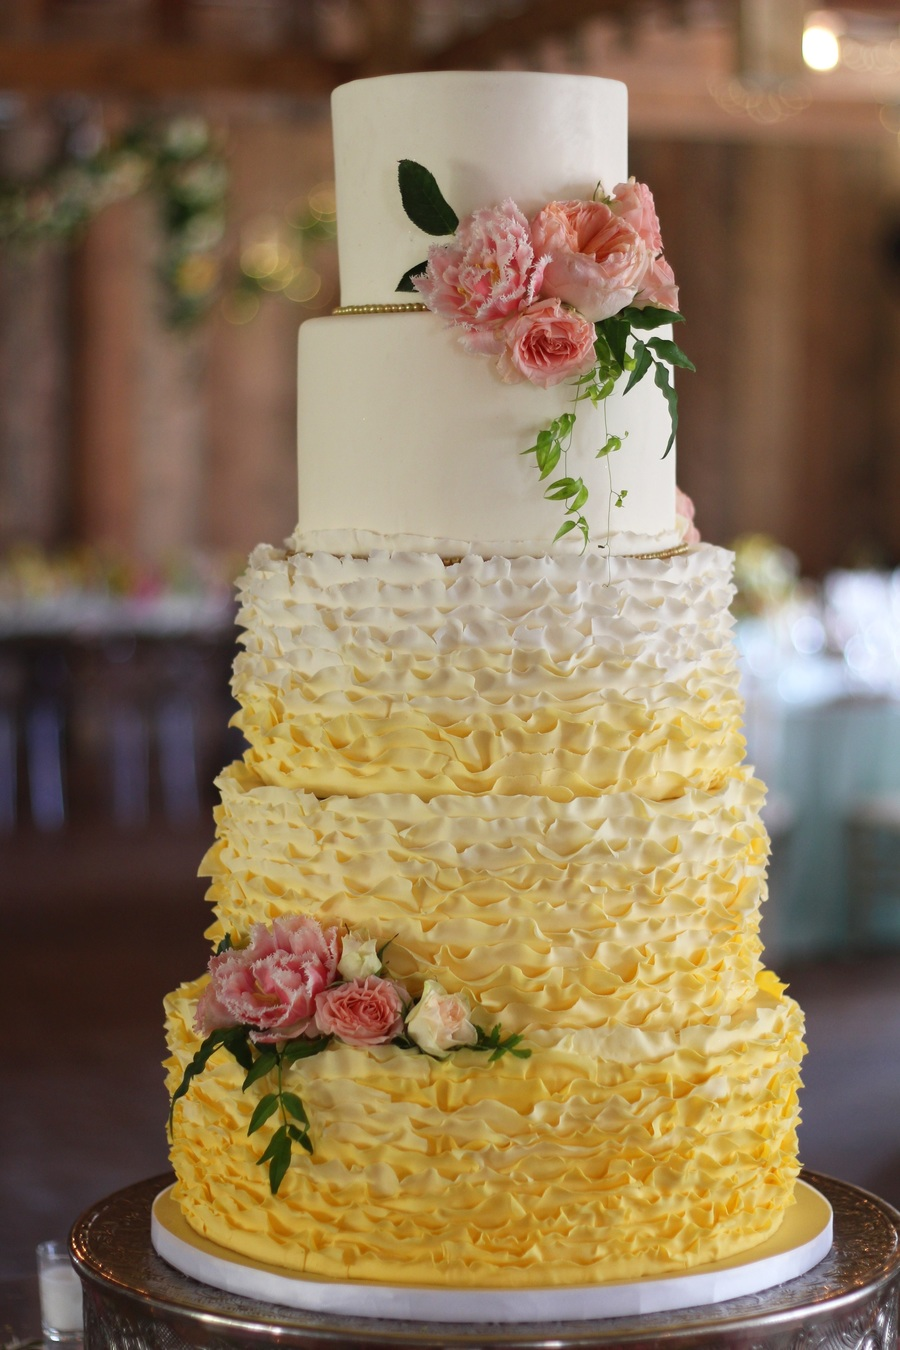 Ivory And Yellow Ombre Ruffle 5 Tier Wedding Cake - CakeCentral.com